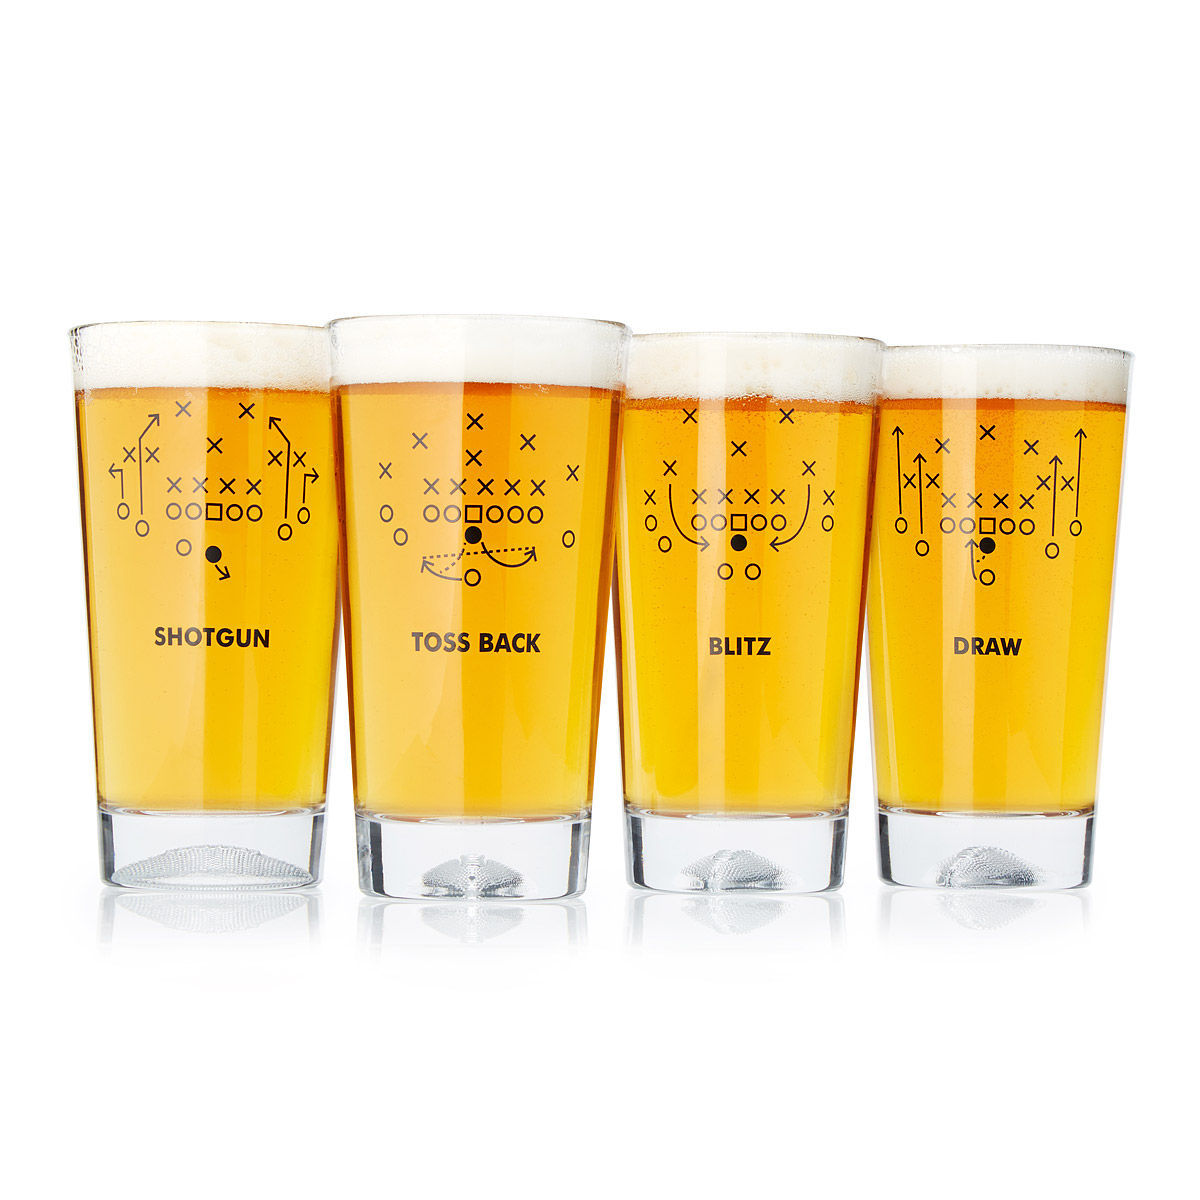 Drawn spectacles drinking glass Playbook Sets UncommonGoods 4 Glass